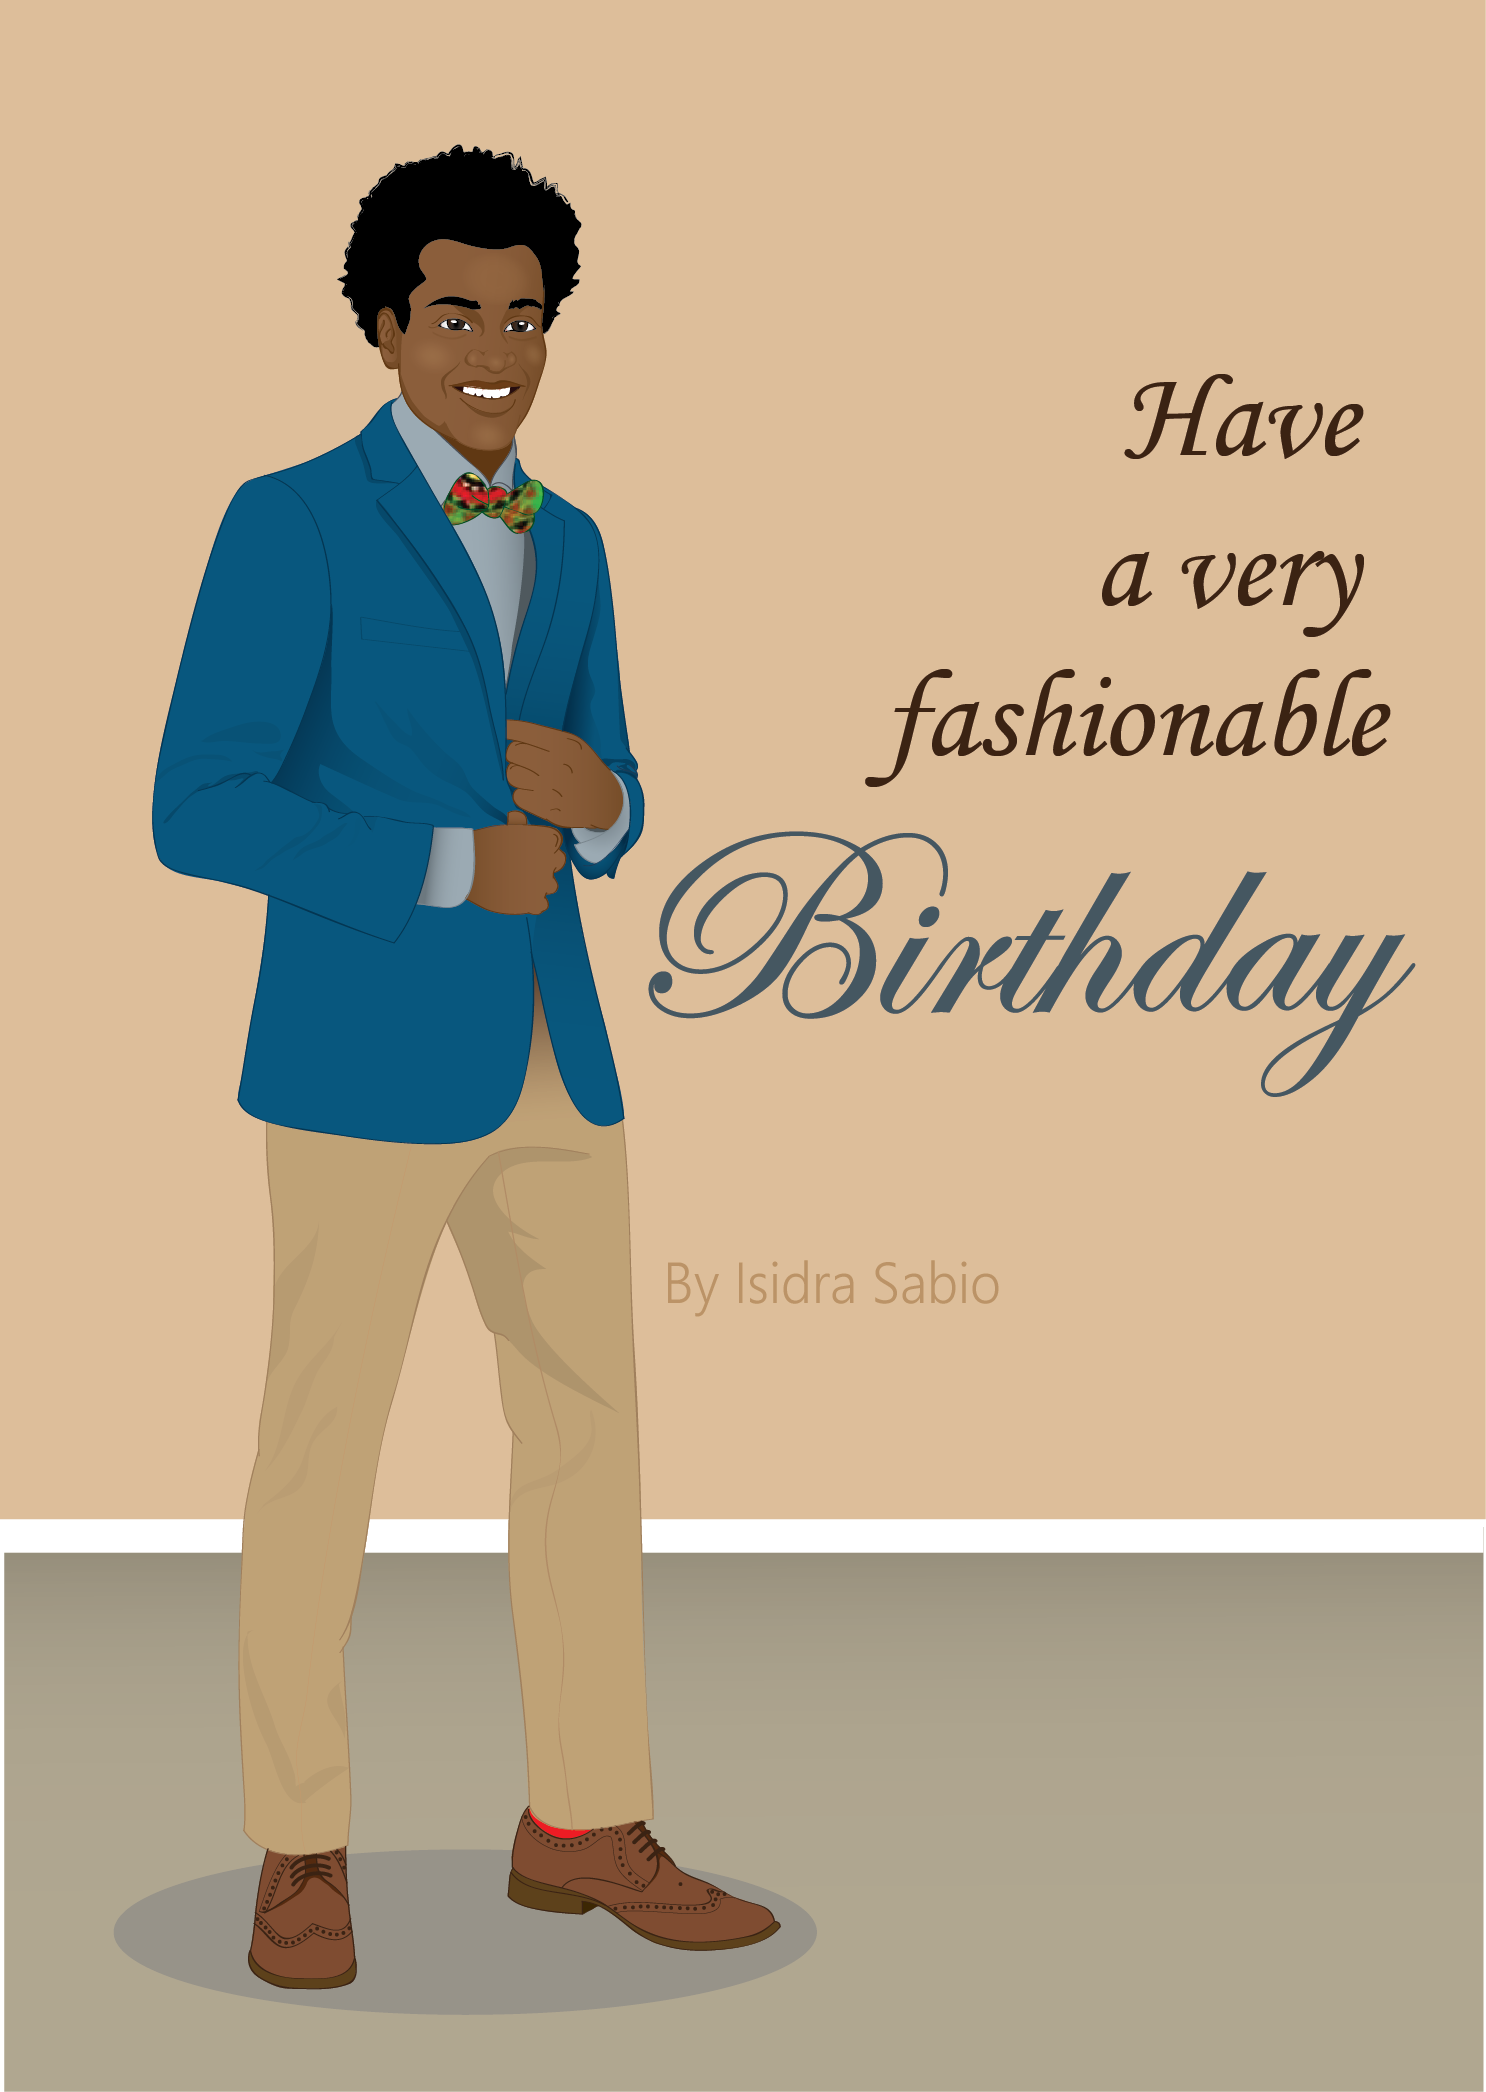 Available Now This Afrocentric Birthday Card For Men Shows A Very